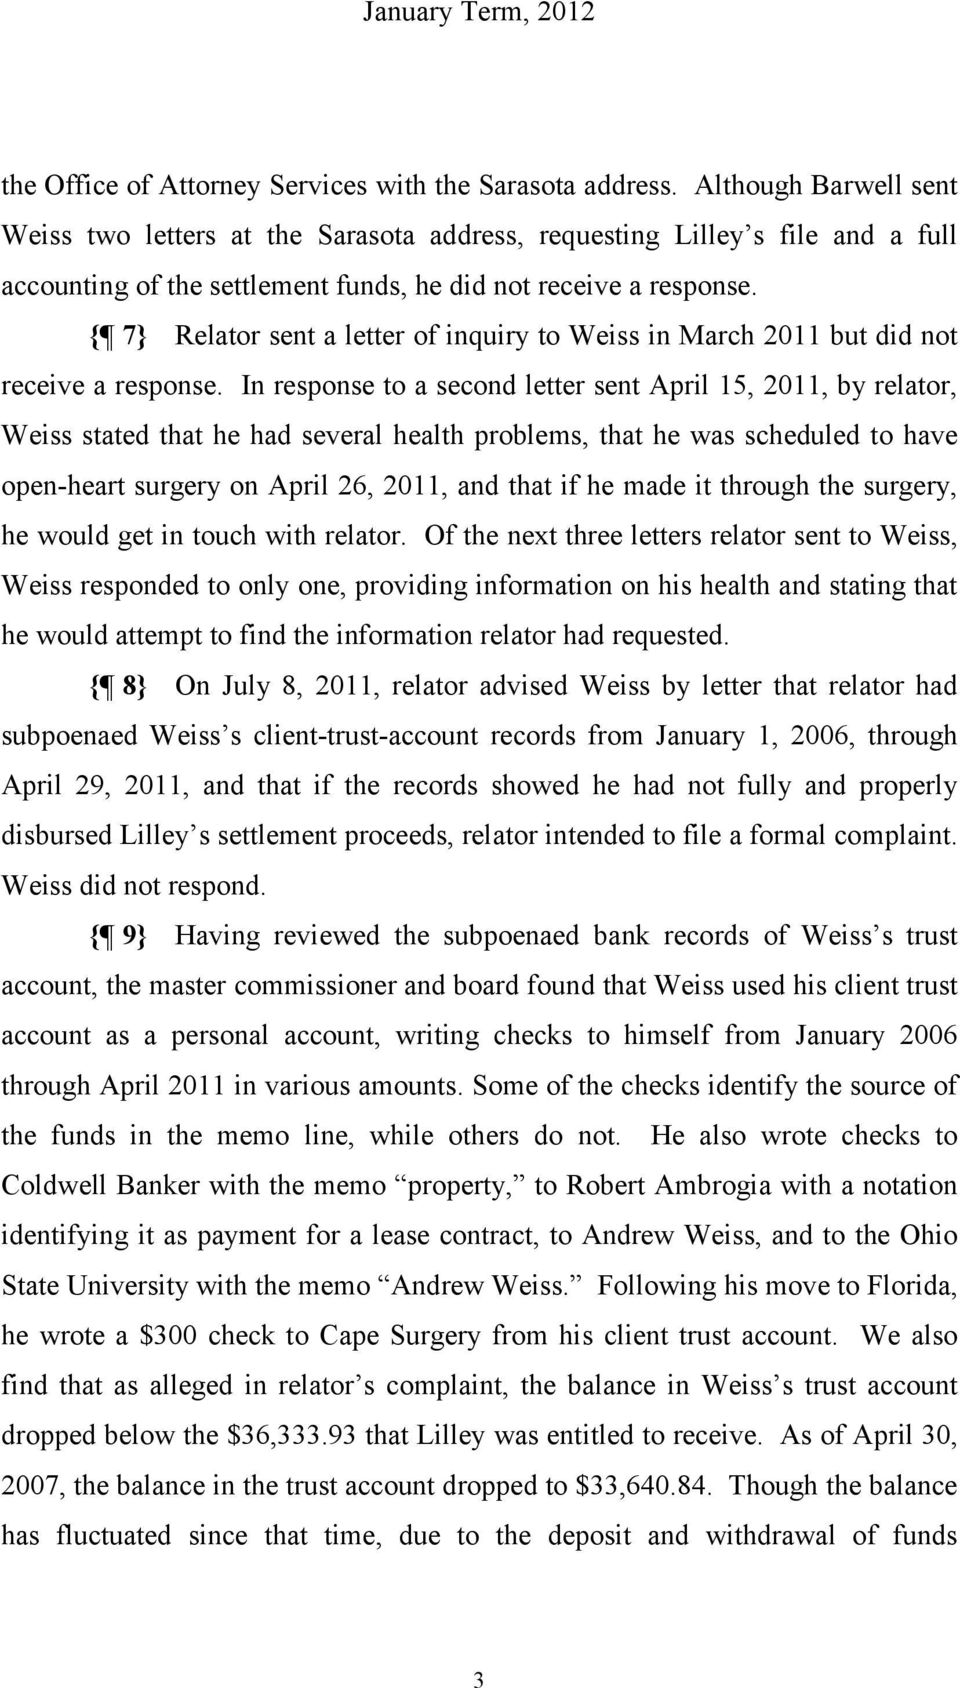 { 7} Relator sent a letter of inquiry to Weiss in March 2011 but did not receive a response.